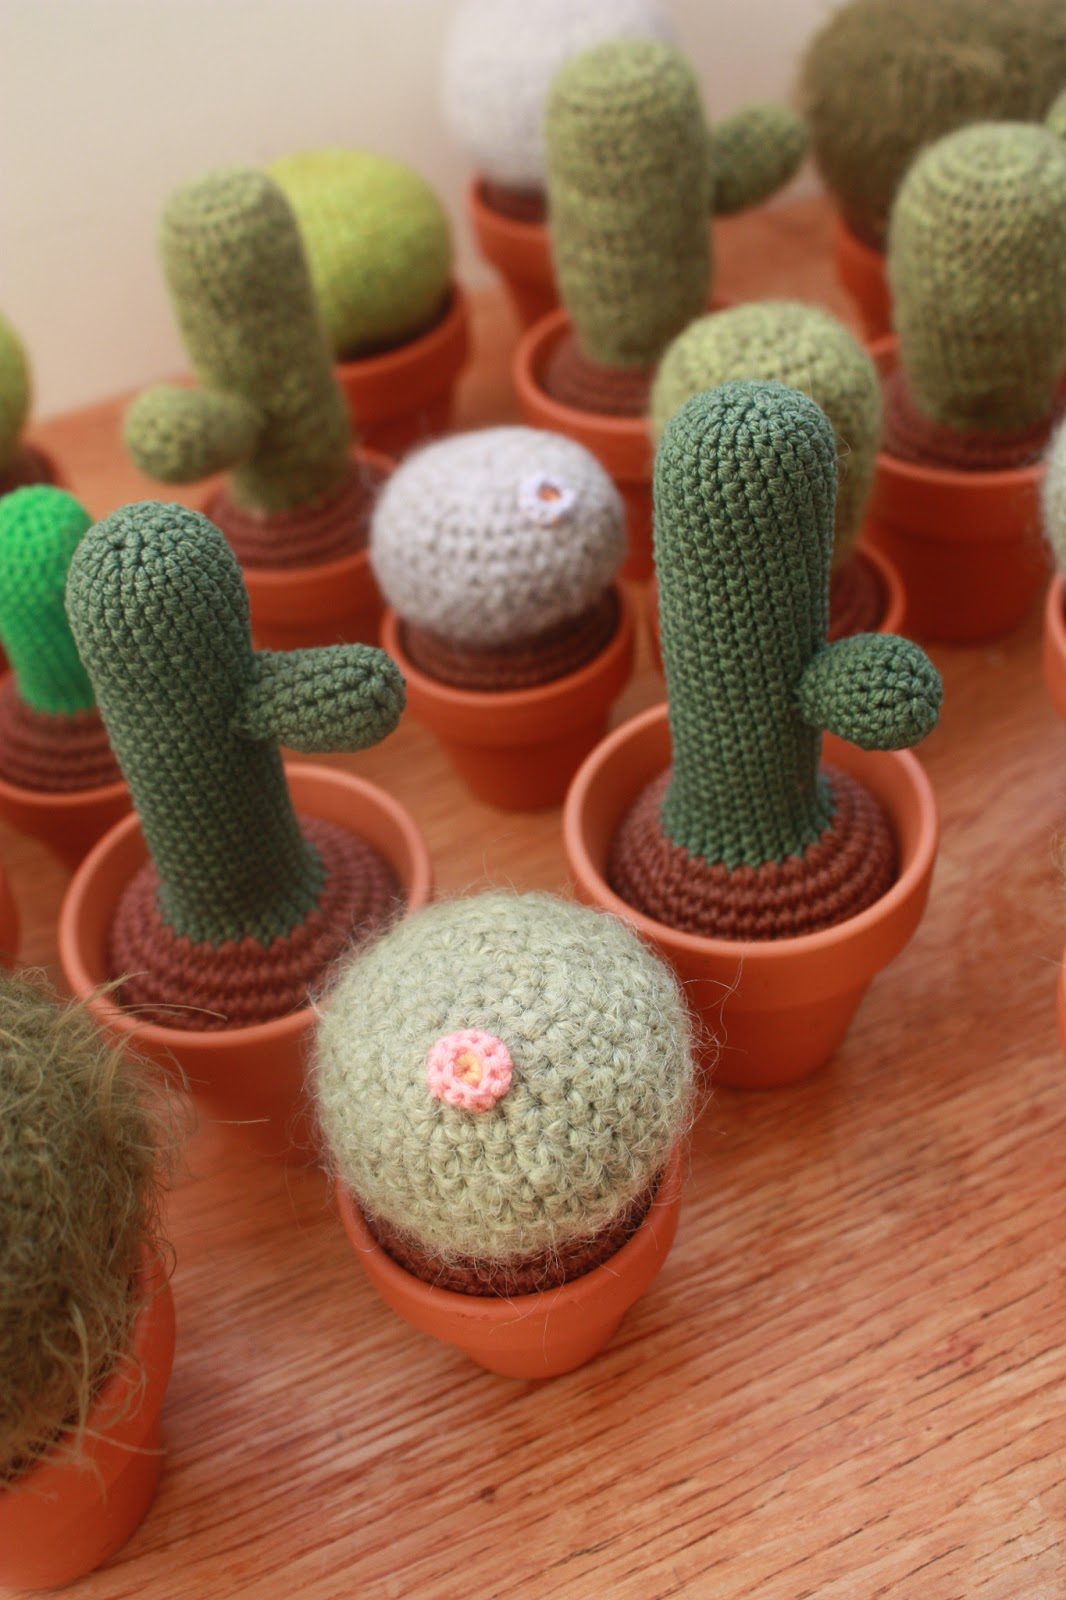 Amigurumi Crochet Flowers : Happyamigurumi: Cacti, crochet ones :)